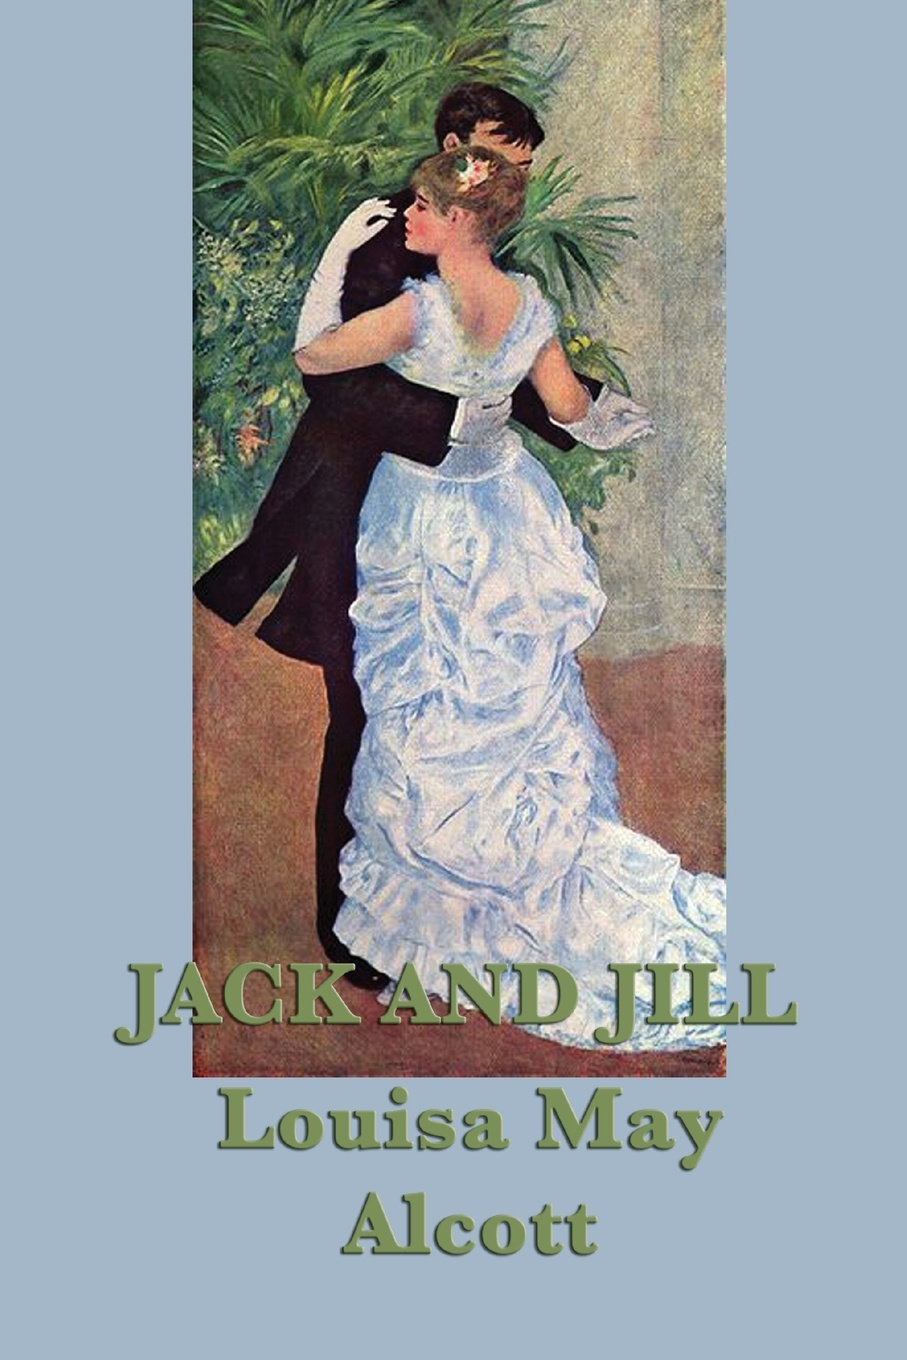 Louisa May Alcott Jack and Jill may alcott louisa may alcott alcott louisa may jack and jill louisa may alcott